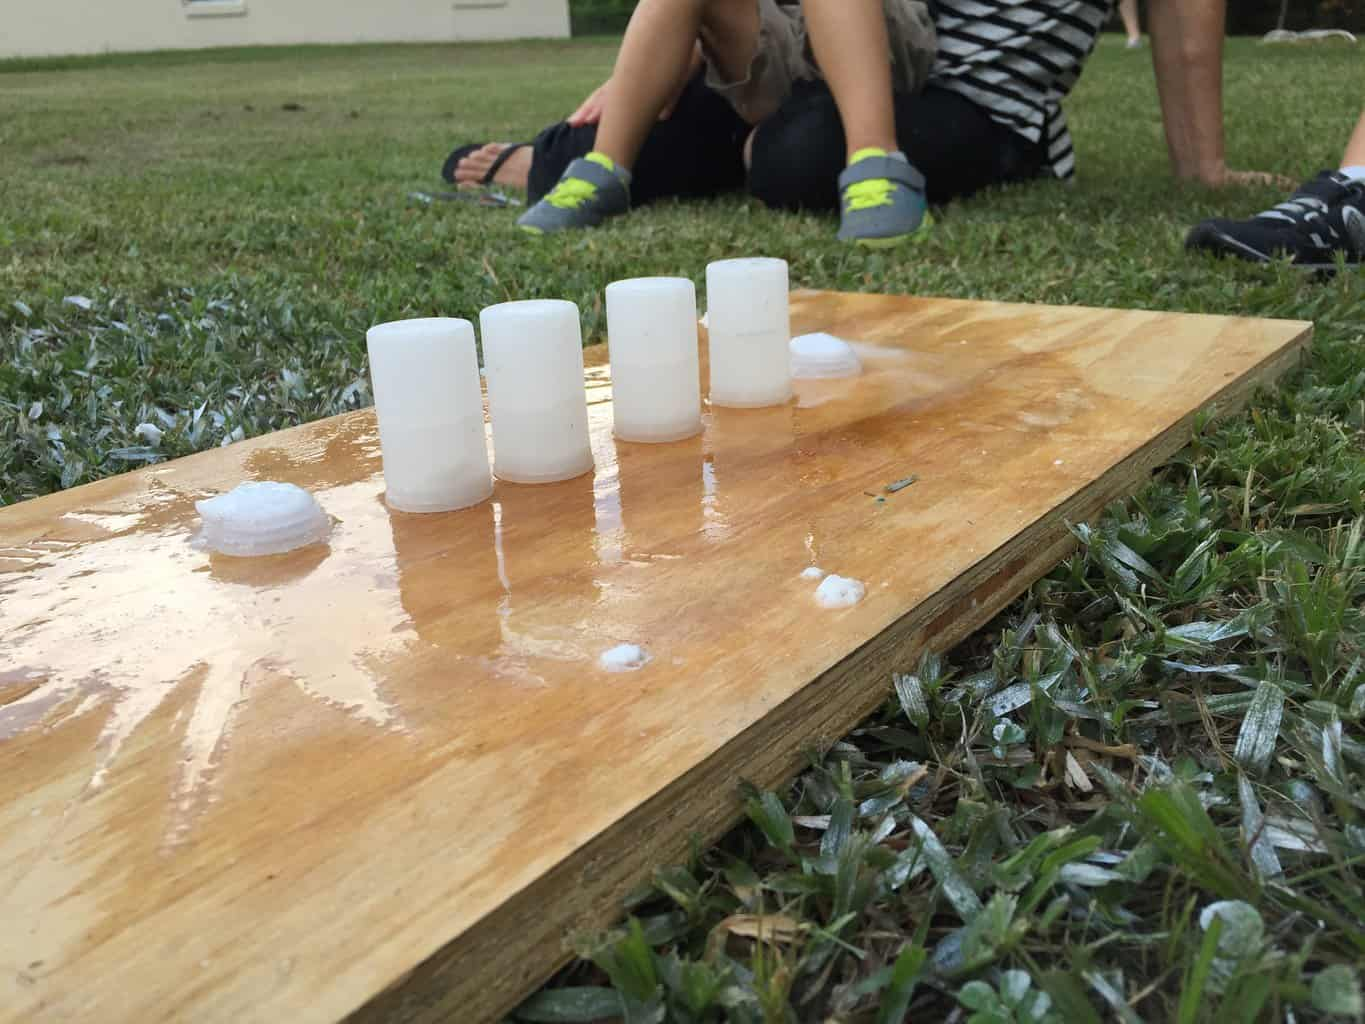 This was the best part of the day. We made bottle rockets! 1. Fill film canisters halfway with water. 2. Drop in half of an alka-seltzer tab in each canister. 3. Seal the lid and flip over. And...BLAST-OFF! Ours went as least 40 ft. in the air. It was so much fun!